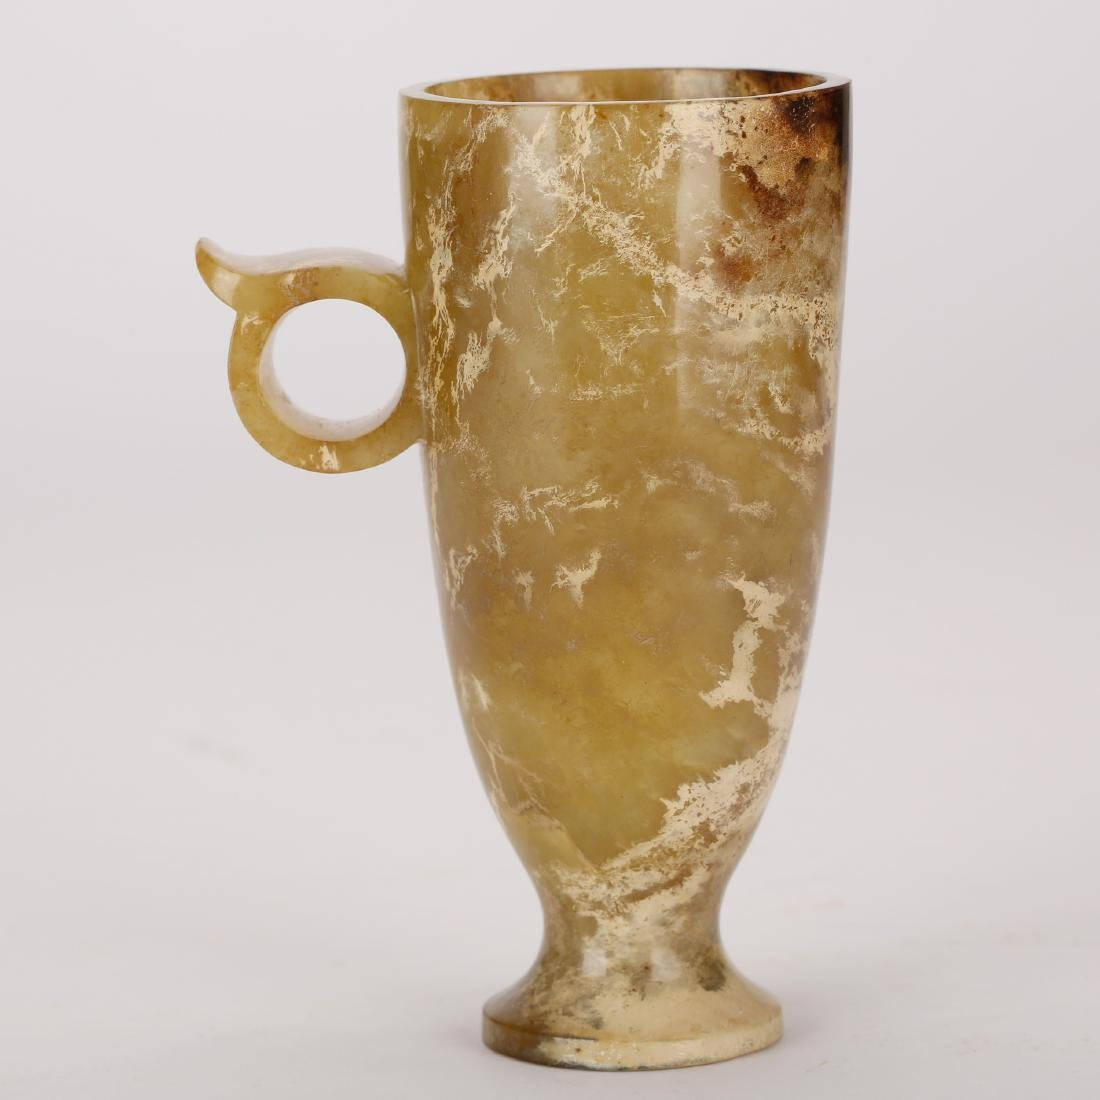 CHINESE ARCHAIC JADE CUP, HAN DYNASTY